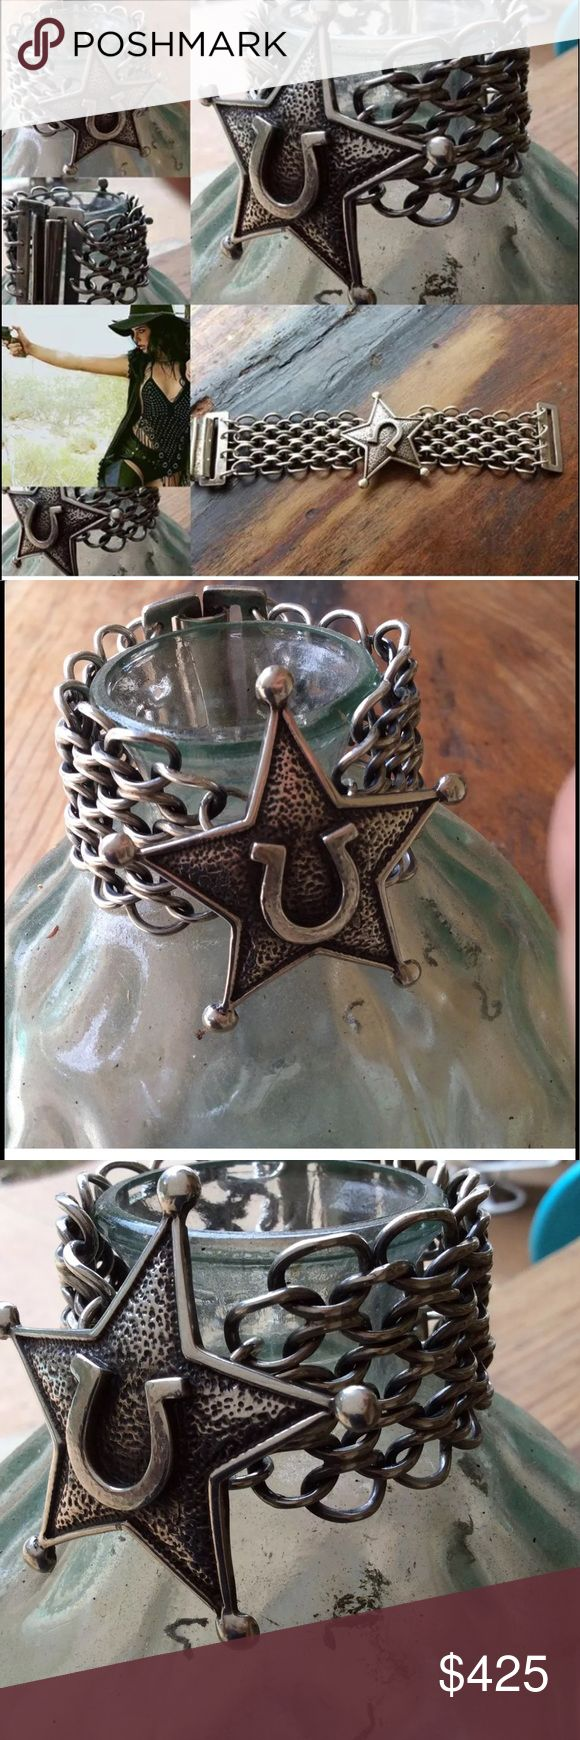 """Sterling Silver .925 Woven Chain Vintage Star Cuff Laguna Beach Silver Jewelry Artist  Original Price $695, All Sterling Silver 925!!   Artisan Handmade Western Style   Omega Texas Star Chain Link Bracelet..   Beautiful Sterling Barrel Lock Close   Length Measures 8""""   Width Measures 1.5""""   Silver Horse Shoe Star 2"""" x 2""""   One of a Kind, Artisan Handmade   Comes on Custom Pouch Artisan Silver Jewelry Bracelets"""